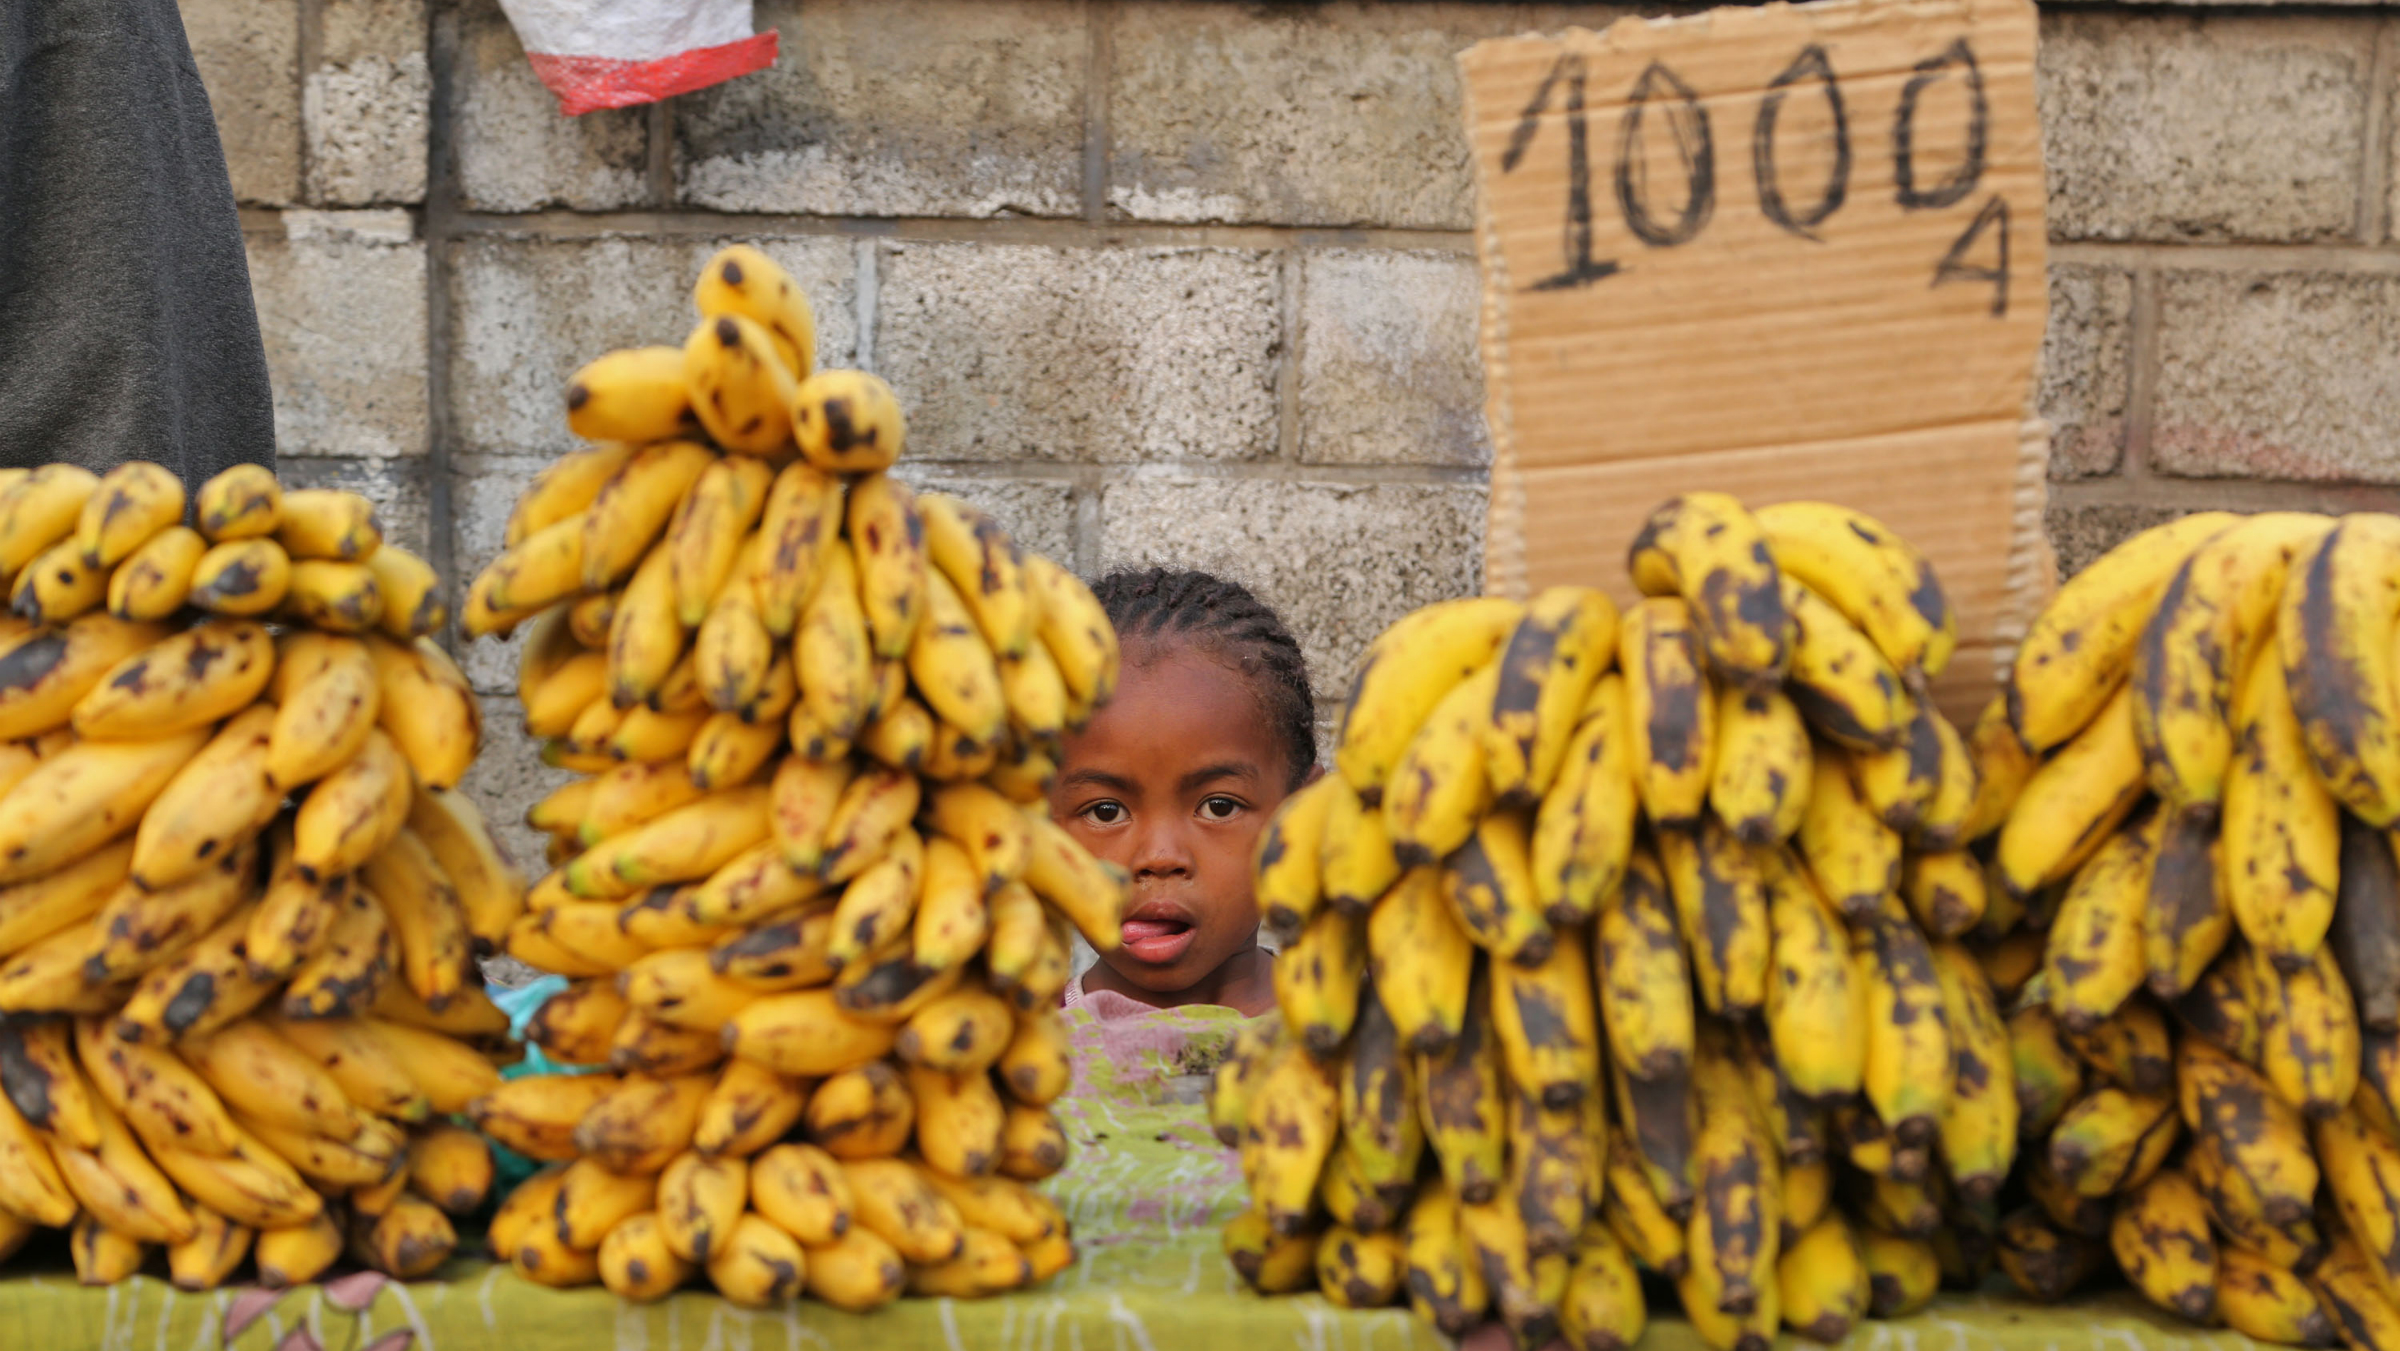 A girl stands behind her father's banana store in the city of Antananarivo, Madagascar, Wednesday, Oct. 23, 2013. Madagascar will hold elections on Friday that organizers hope will end political tensions that erupted in a 2009 coup and help lift the aid-dependent country out of poverty. The island nation in the Indian Ocean plunged into turmoil after Andry Rajoelina, the current president, forcibly took power from former President Marc Ravalomanana with the backing of the military. (AP Photo/Schalk van Zuydam